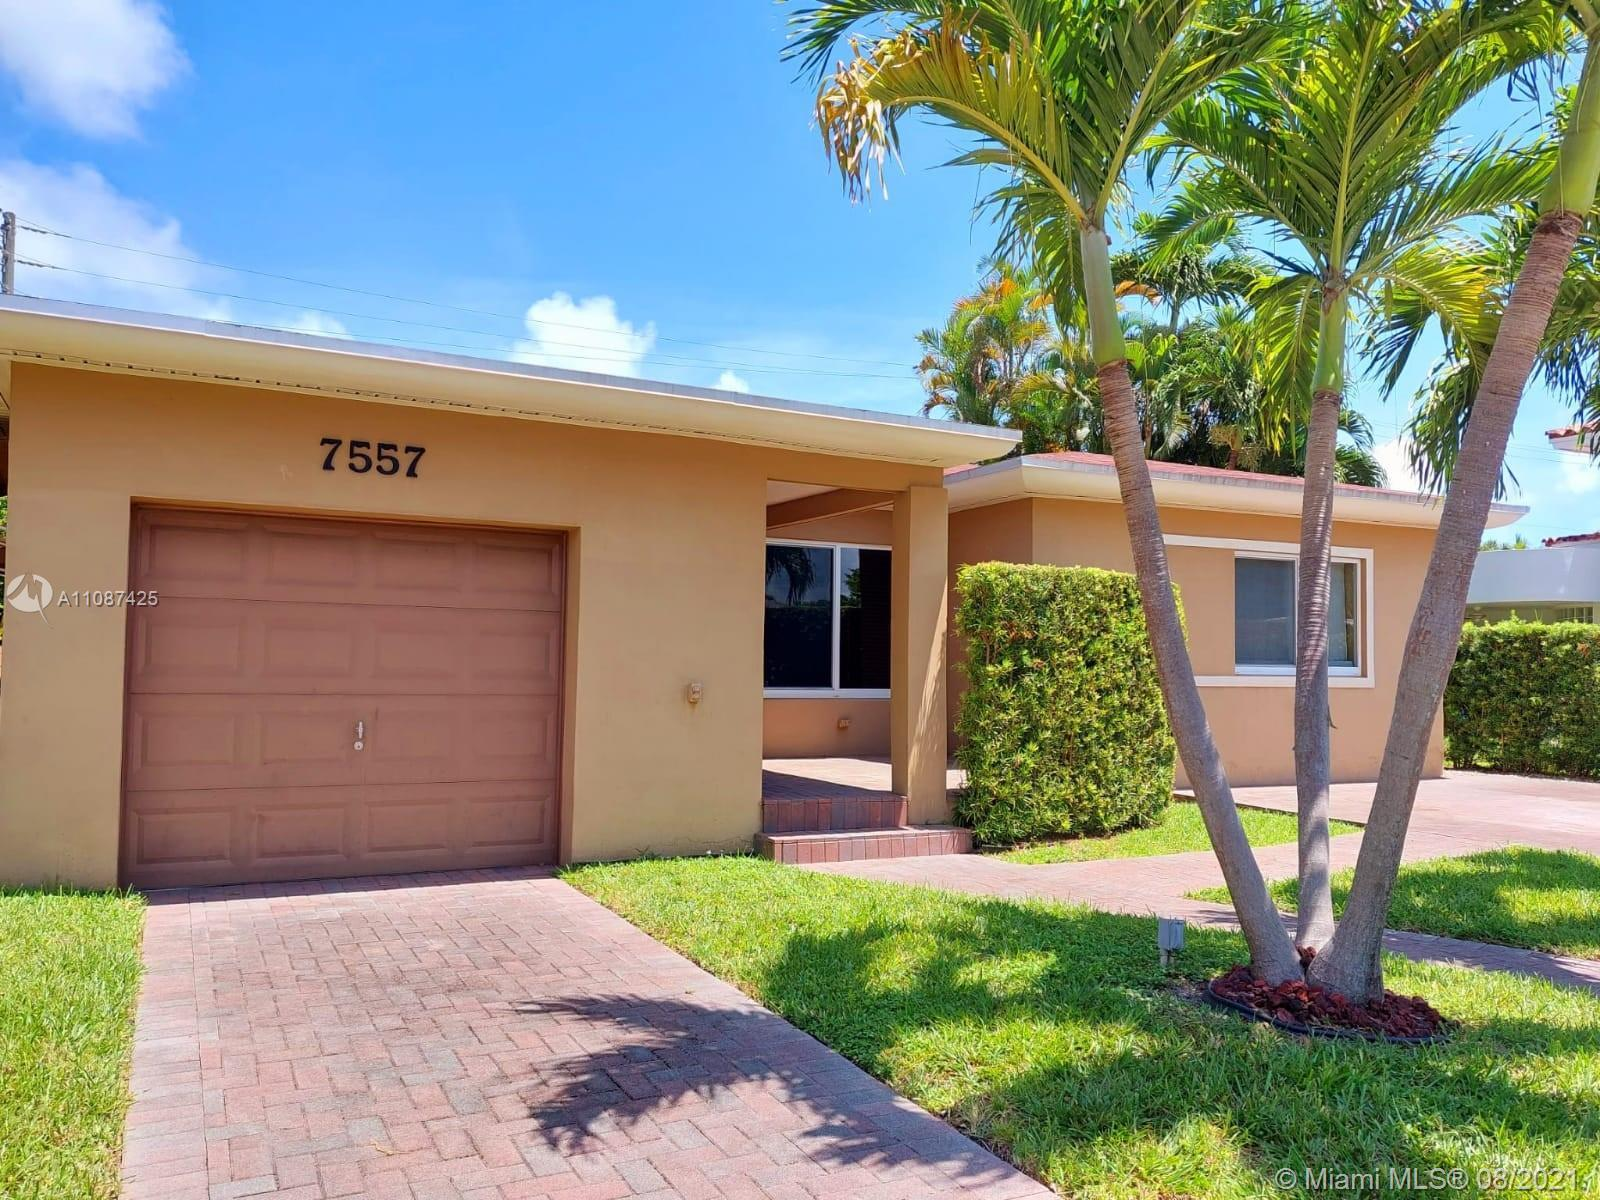 Welcome to 7557 Mutiny Ave! This renovated 3 bedroom / 2 bathroom (plus garage) home boasts new PGT